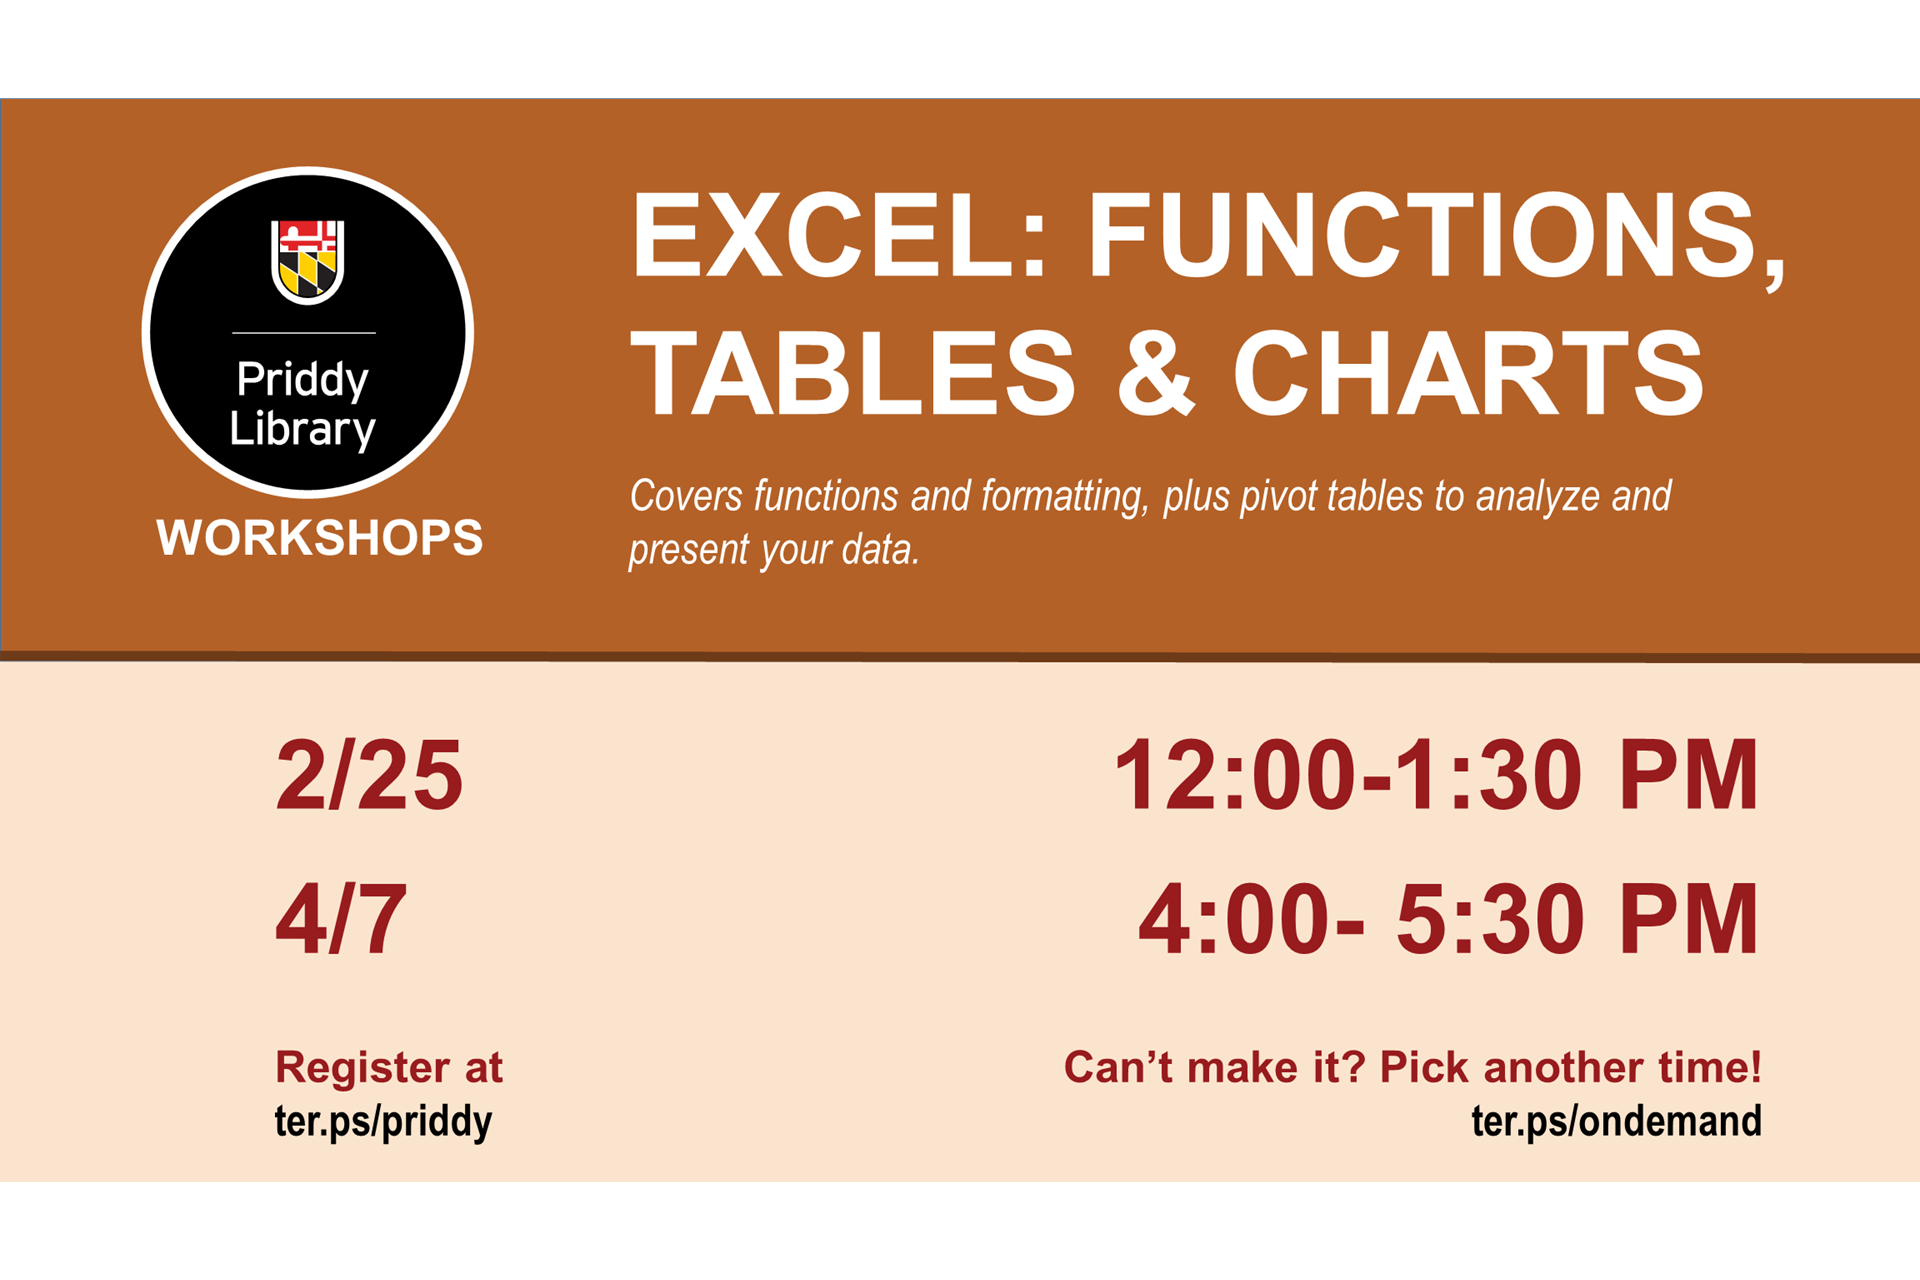 Excel workshop flyer